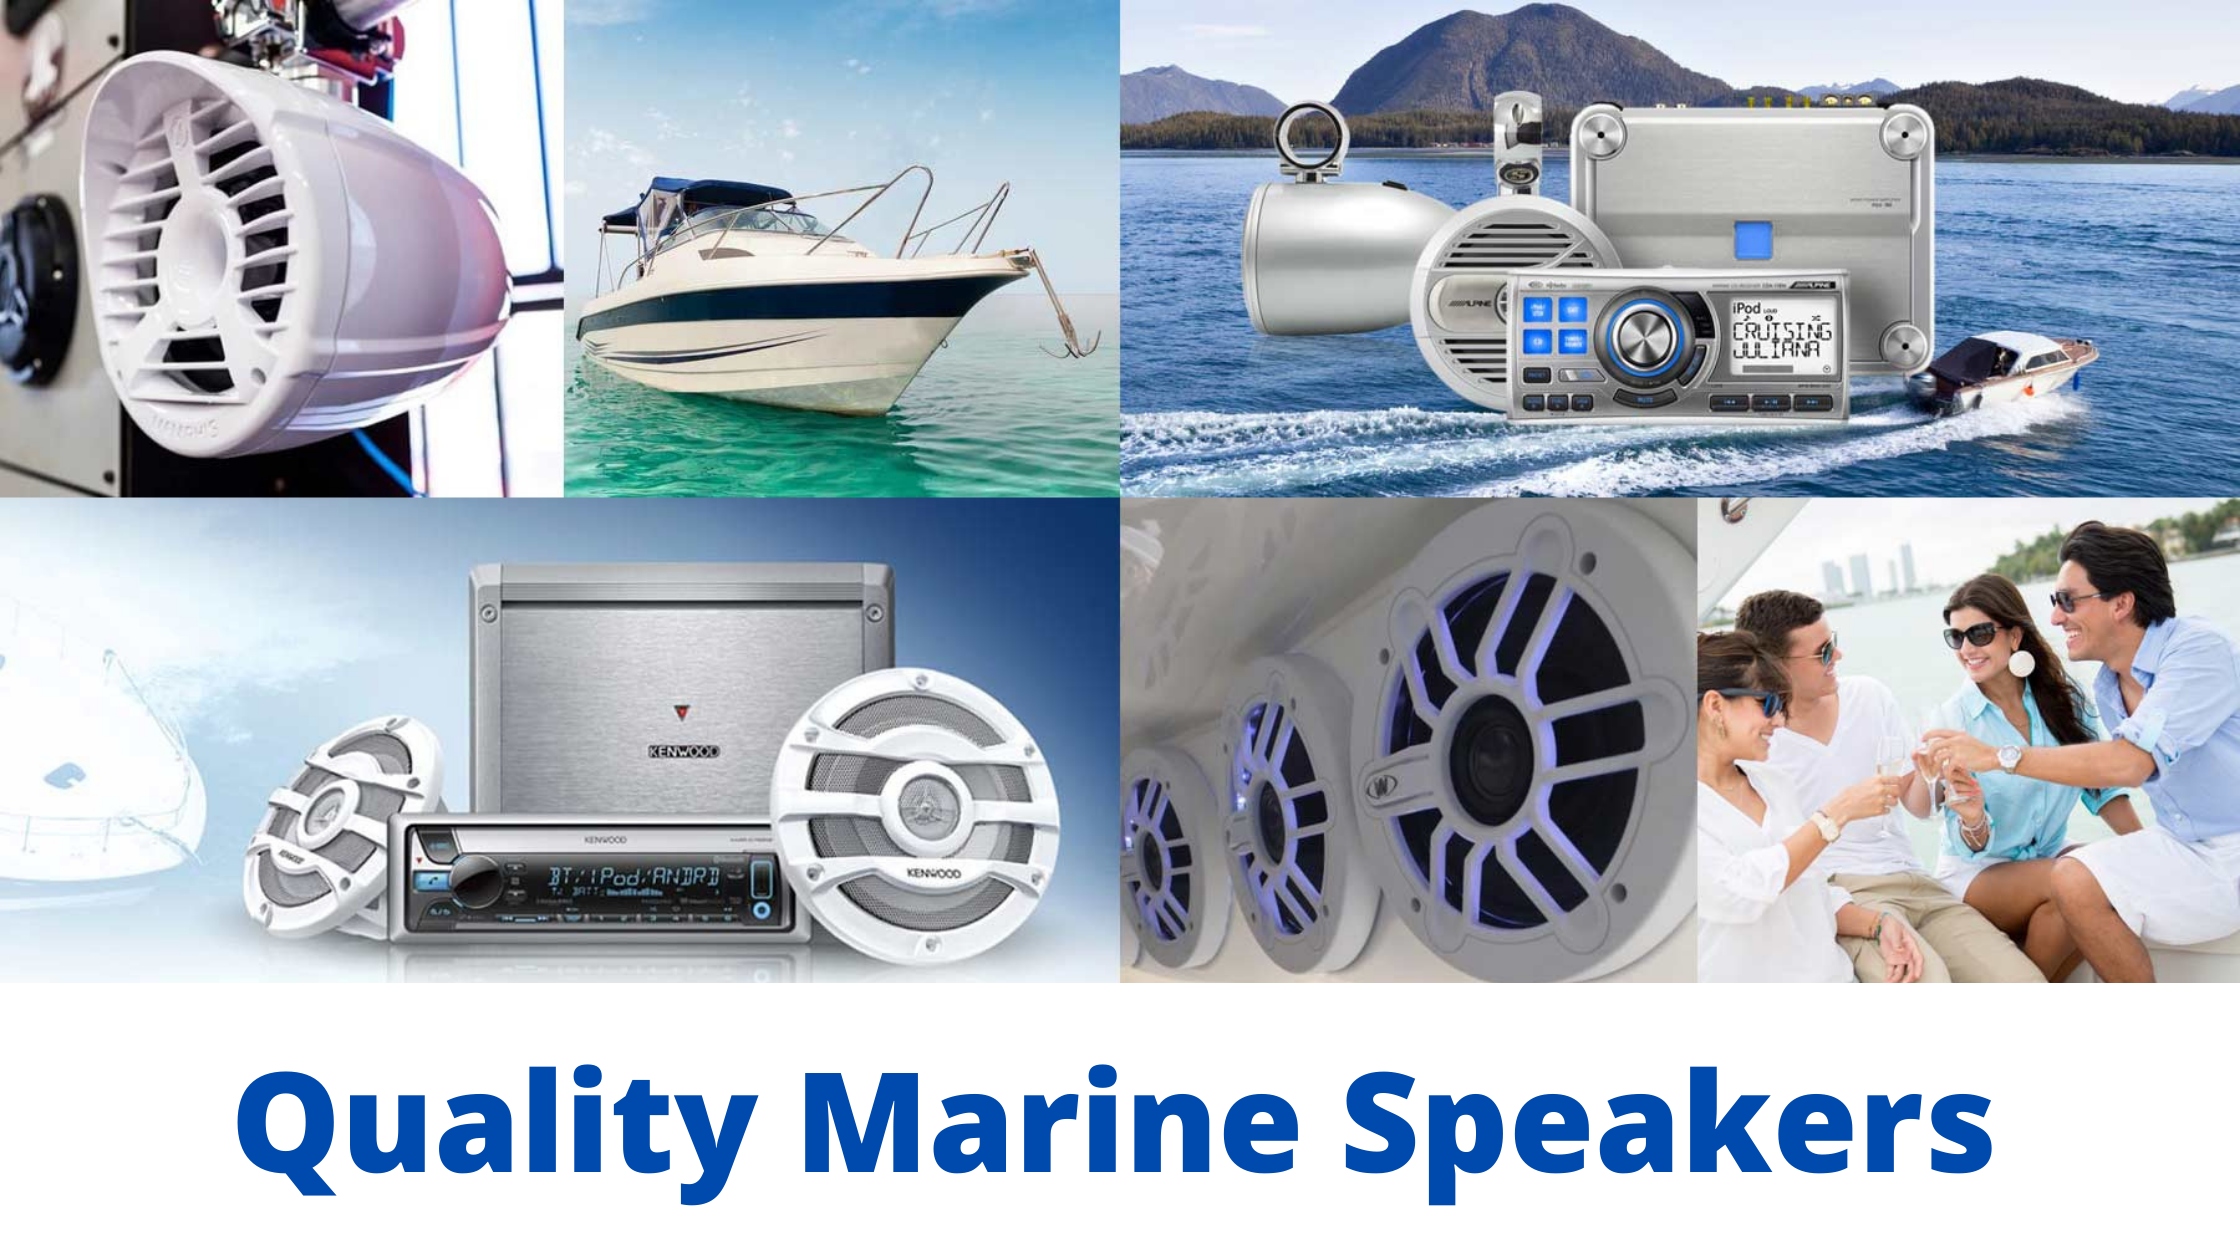 How To Choose The Best Marine Speakers If you are looking for the best marine speakers you may be feeling a little overwhelmed at the wide range of choices available. What can help you to make a good decision? We hope that the clear and simple tips below will come in useful. Tip 1 - Consider The Installation Size Marine speakers can be tricky when it comes to sizes. Sometimes the size quoted by the manufacturer may not be the size you expect. For instance, the measurement that the manufacture gives might be the diameter of the cone inside, in fact, this is usually the case, however, you are not getting a guarantee about the diameter of the grill or the cutout hole. It's good to note that different manufacture sizes will vary even though they may initially appear the same, for instance, a JBL 6 1/2 inch speaker will actually be different when it comes to the cutout diameter to a Magnadyne 6 1/2 inch speaker. Make sure that you know your size limitations very well and ensure that the marine speakers that you purchase are going to be the right fit. Tip 2 - Consider The Speaker Quality There are various options to choose from, the main two being dual cone and coaxial. In general, the coaxial will provide better overall performance than the dual cone. However, they often come with a higher price tag. The size of your budget, as well as your needs, will determine whether the coaxial variants are going to be an option or not. The Bottom Line On Making A Good Choice Of course, there are many other factors to take into consideration when deciding which speakers are going to be the best fit for your needs. For instance, you should also give thought to power handling and consider which of the speakers would be a good fit for your intended purpose. However, if you sit down in advance and inform yourself on the way that speakers are sized then take good note of your own size requirements you are already ticking one very big and important box. After this, take a little more time 